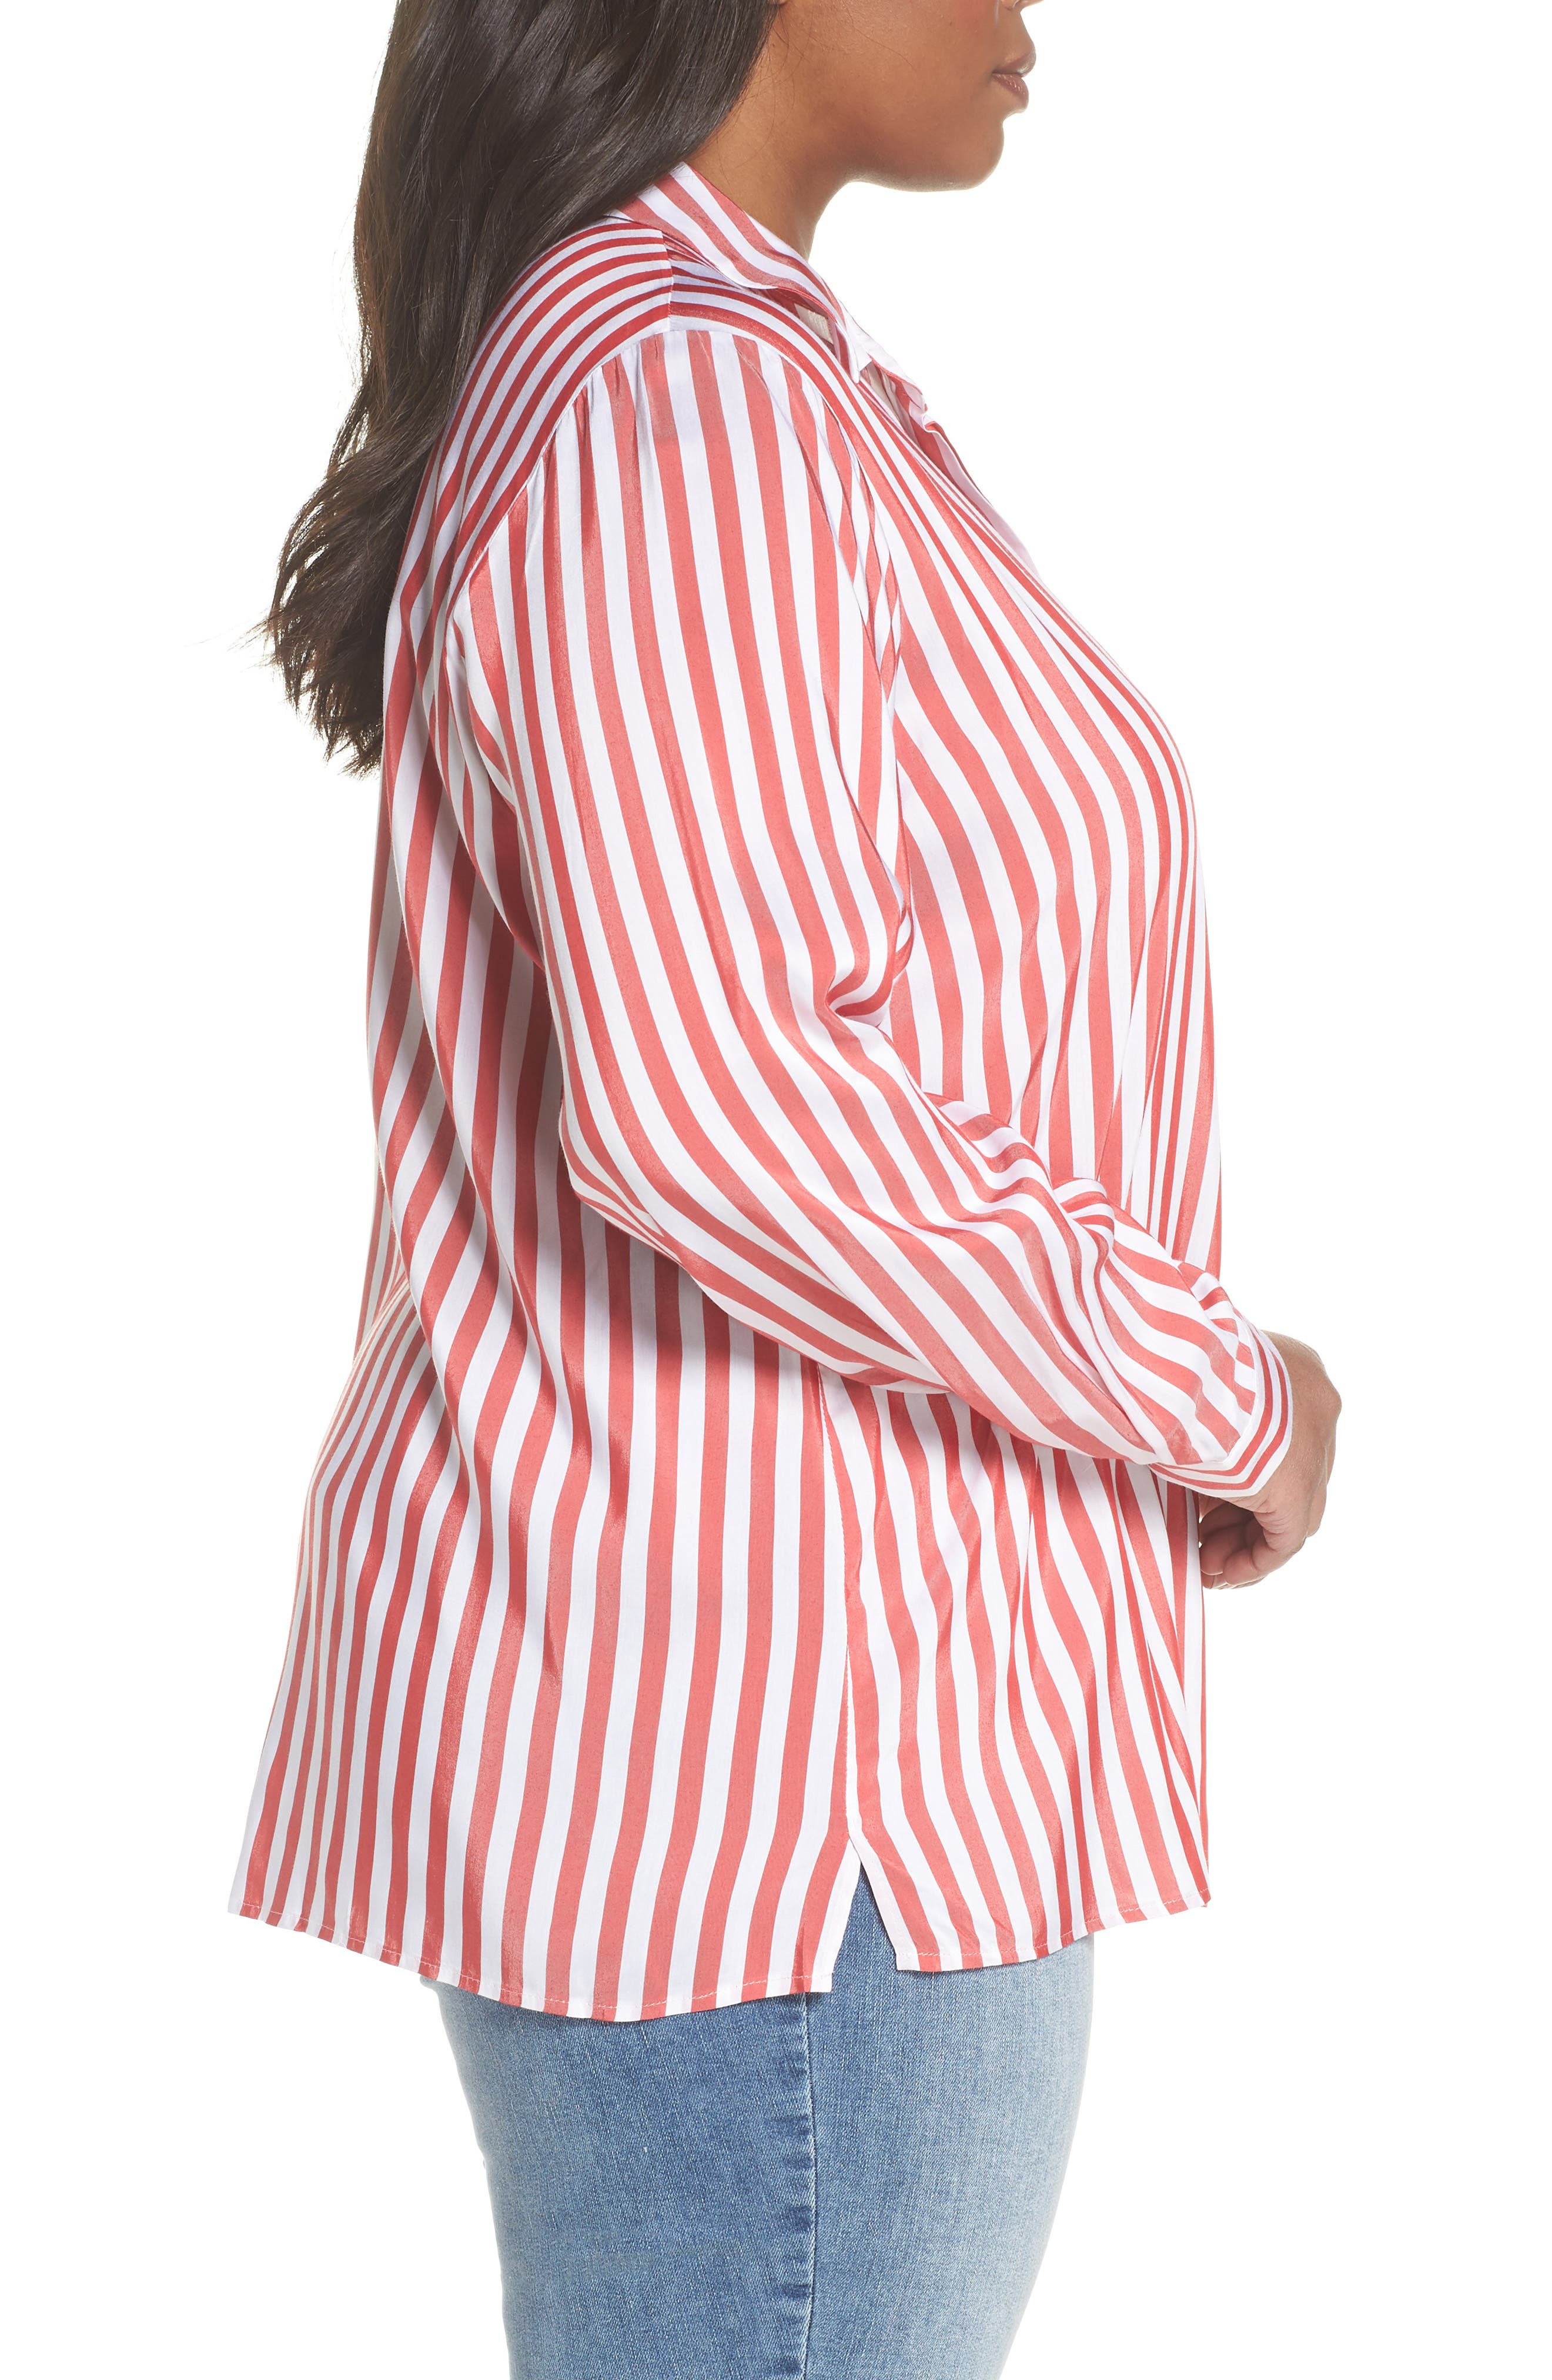 Stripe Blouse,                             Alternate thumbnail 3, color,                             Red/ White Stripe